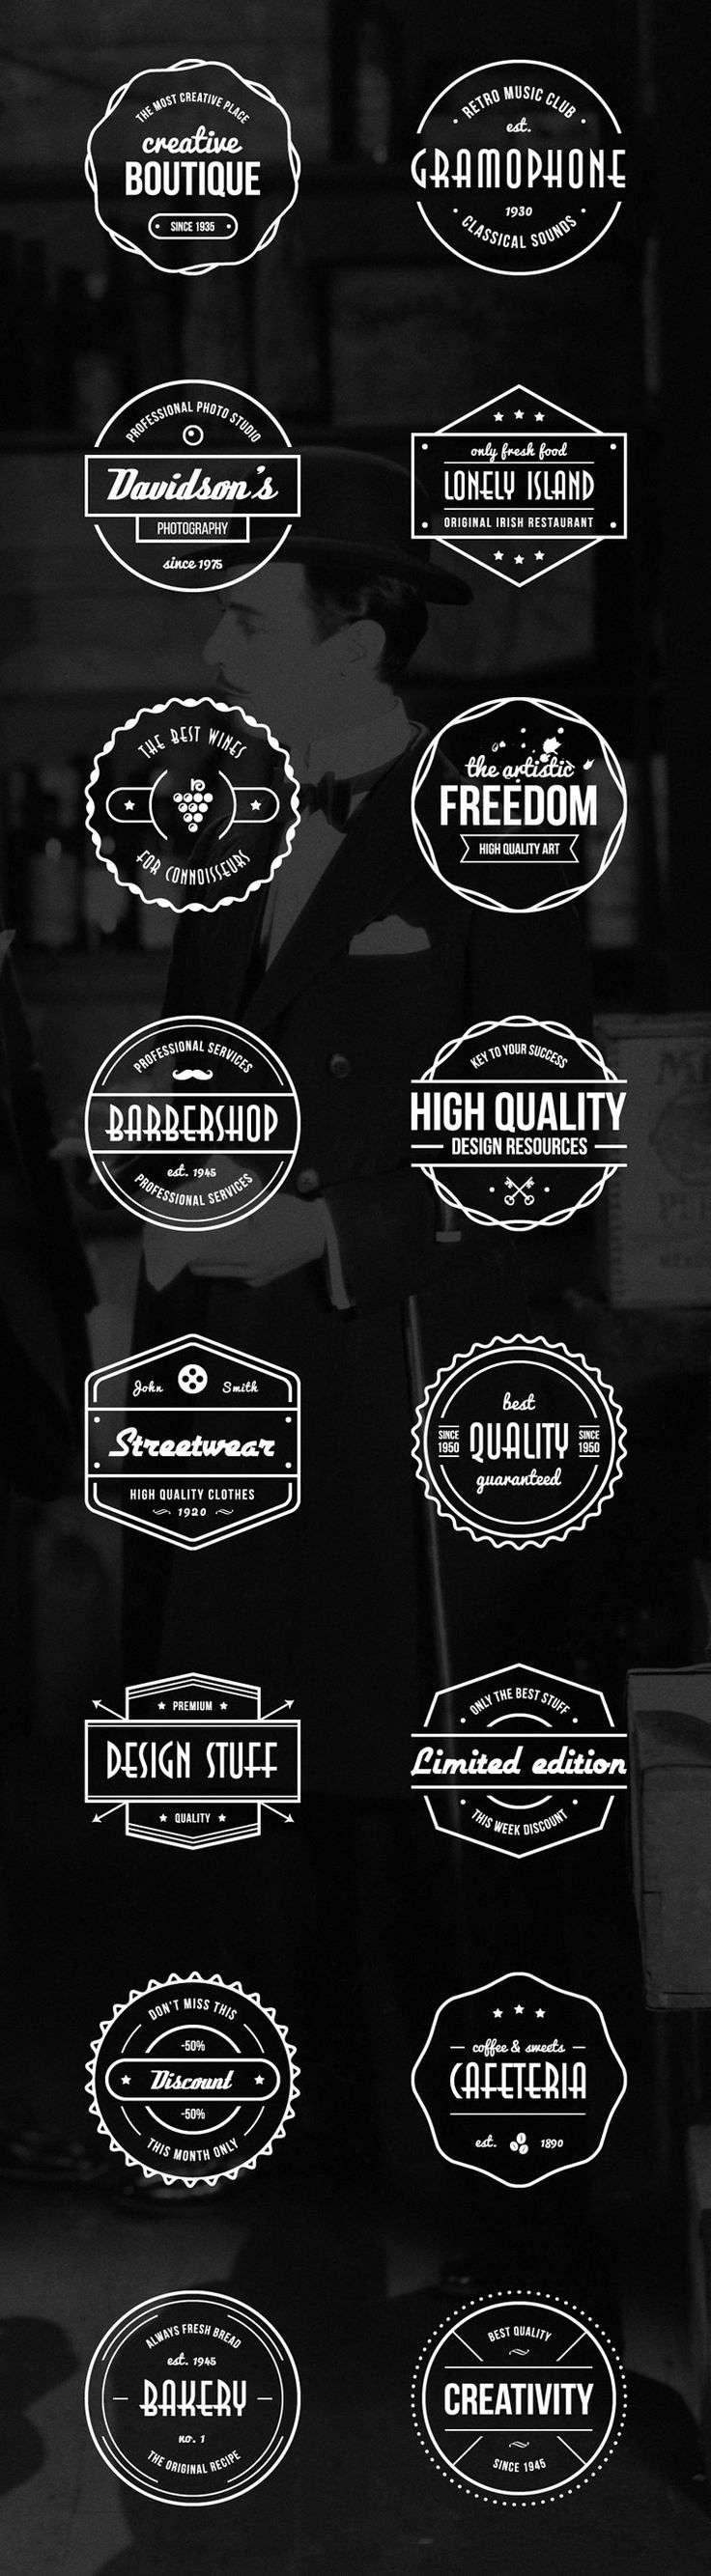 The design stuff but honeycomb Freebie: Vector Vintage Badges (AI & EPS) (40 MB) | speckyboy.com